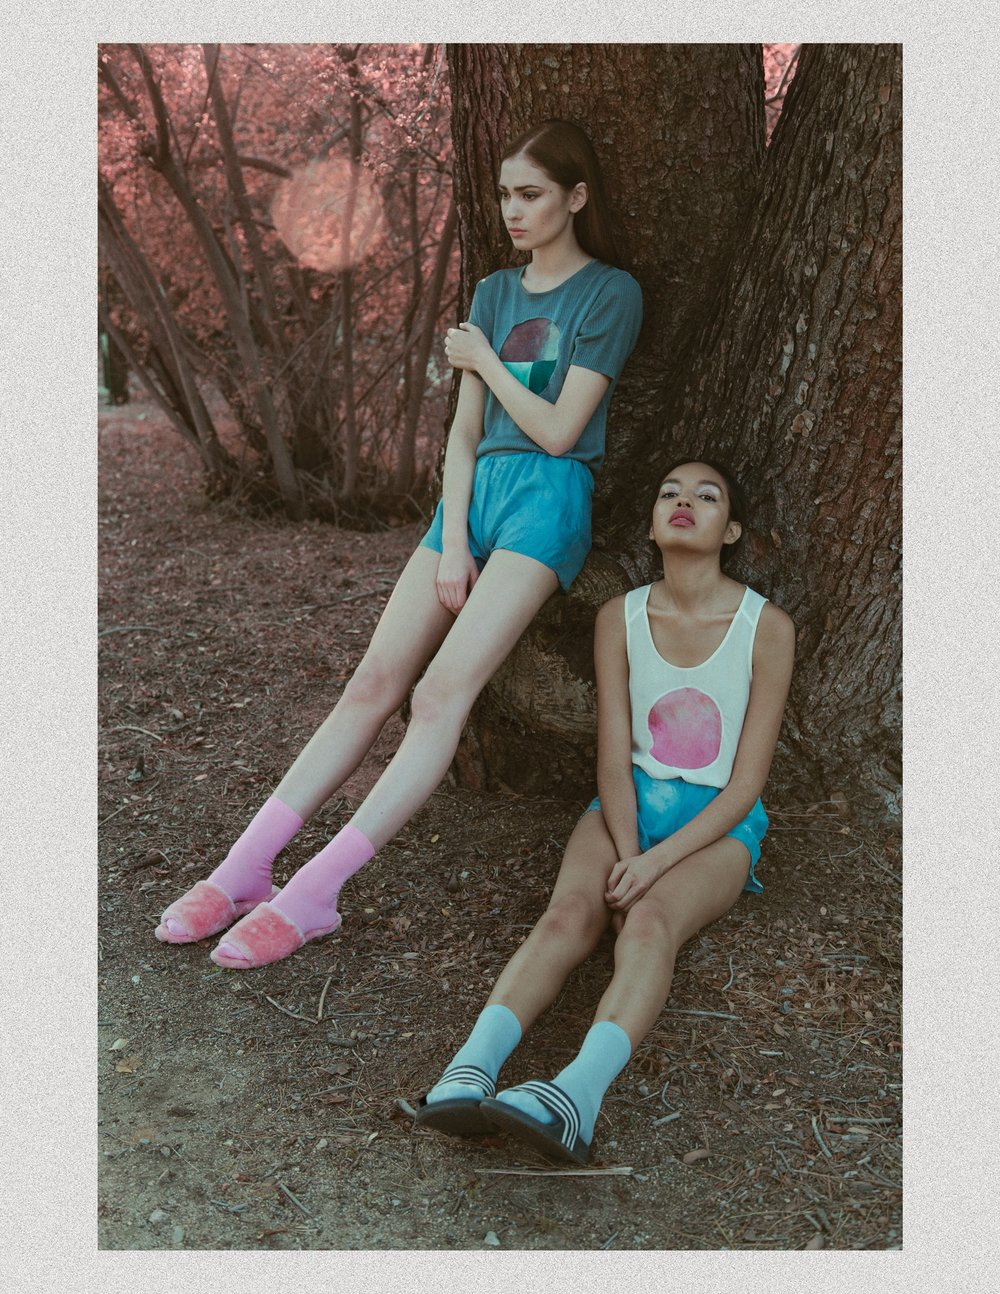 The Other Side published in Schon Magazine.  Thanks to Lauren Naylor, Allison Victoria, Claire Quest, Miyma Ramzy, Bianca Finch, and Claudia Lamprea